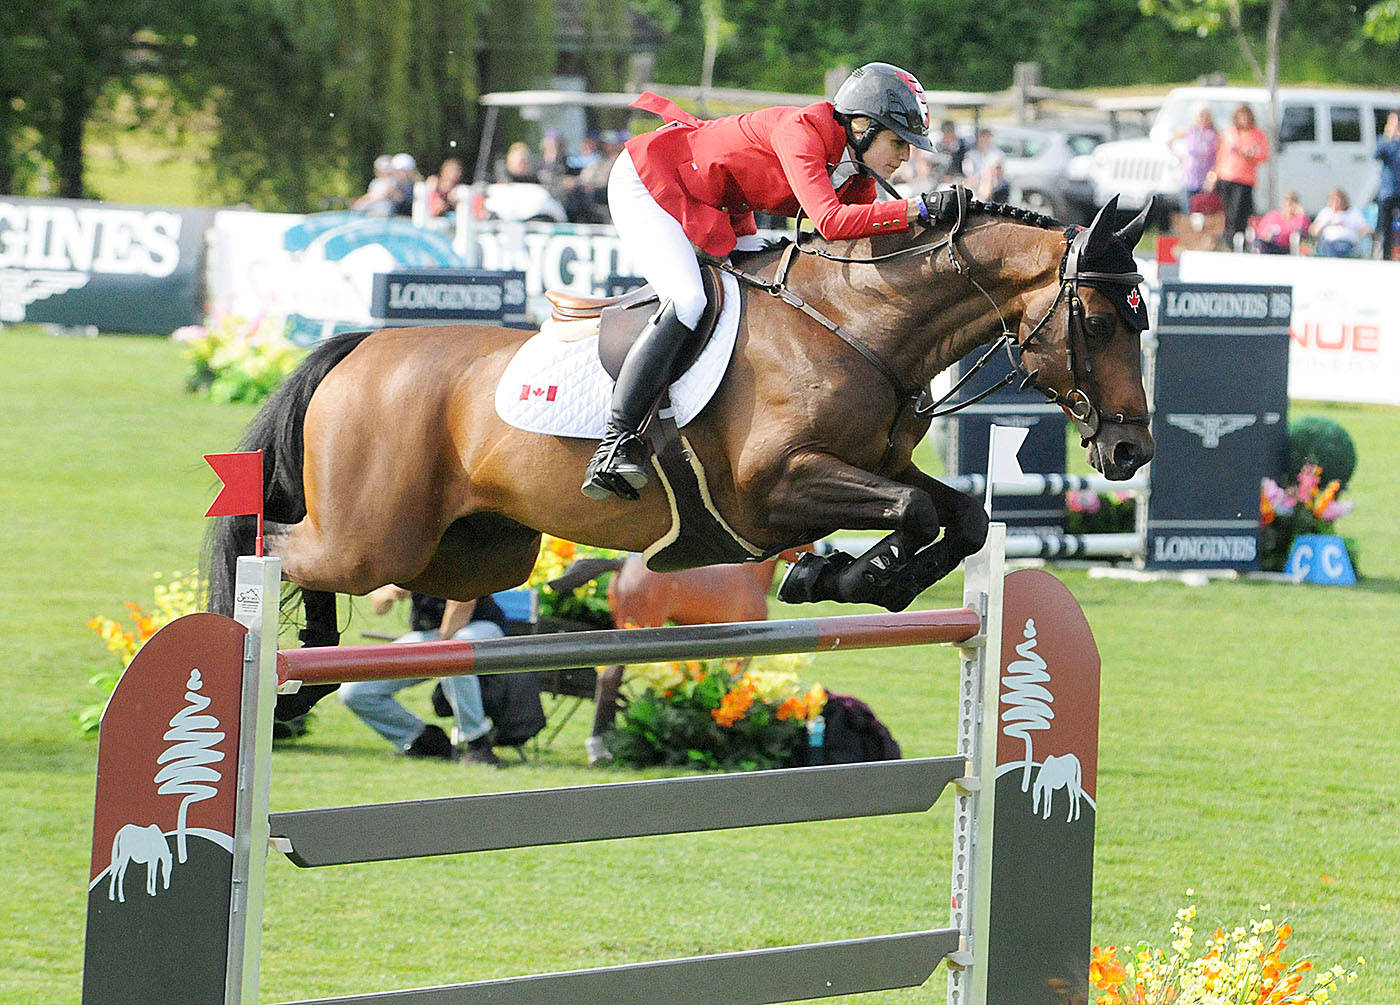 Team Canada's Tiffany Foster and her horse cleared a fence during the FEI Nations Cup at Langley's Thunderbird Show Park on Friday. Troy Landreville Langley Times